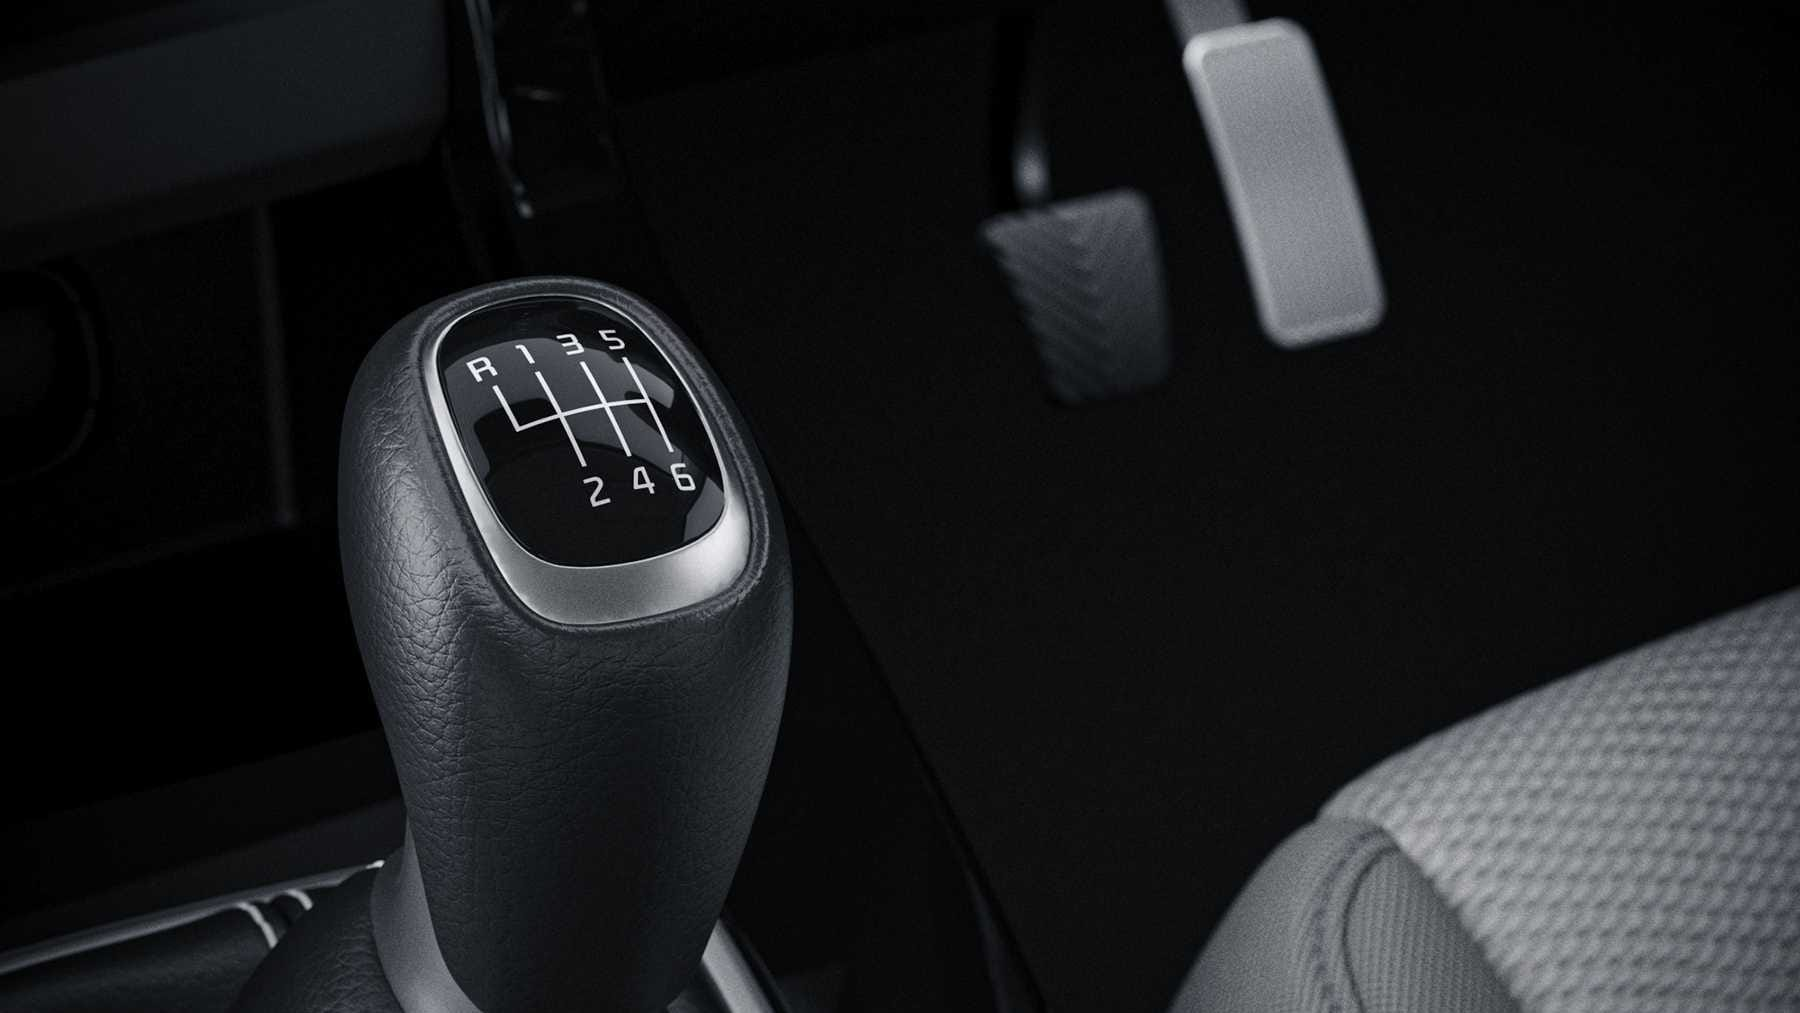 The Kia Seltos is the first midsize SUV to get an intelligent manual transmission (iMT) option. Image: Kia